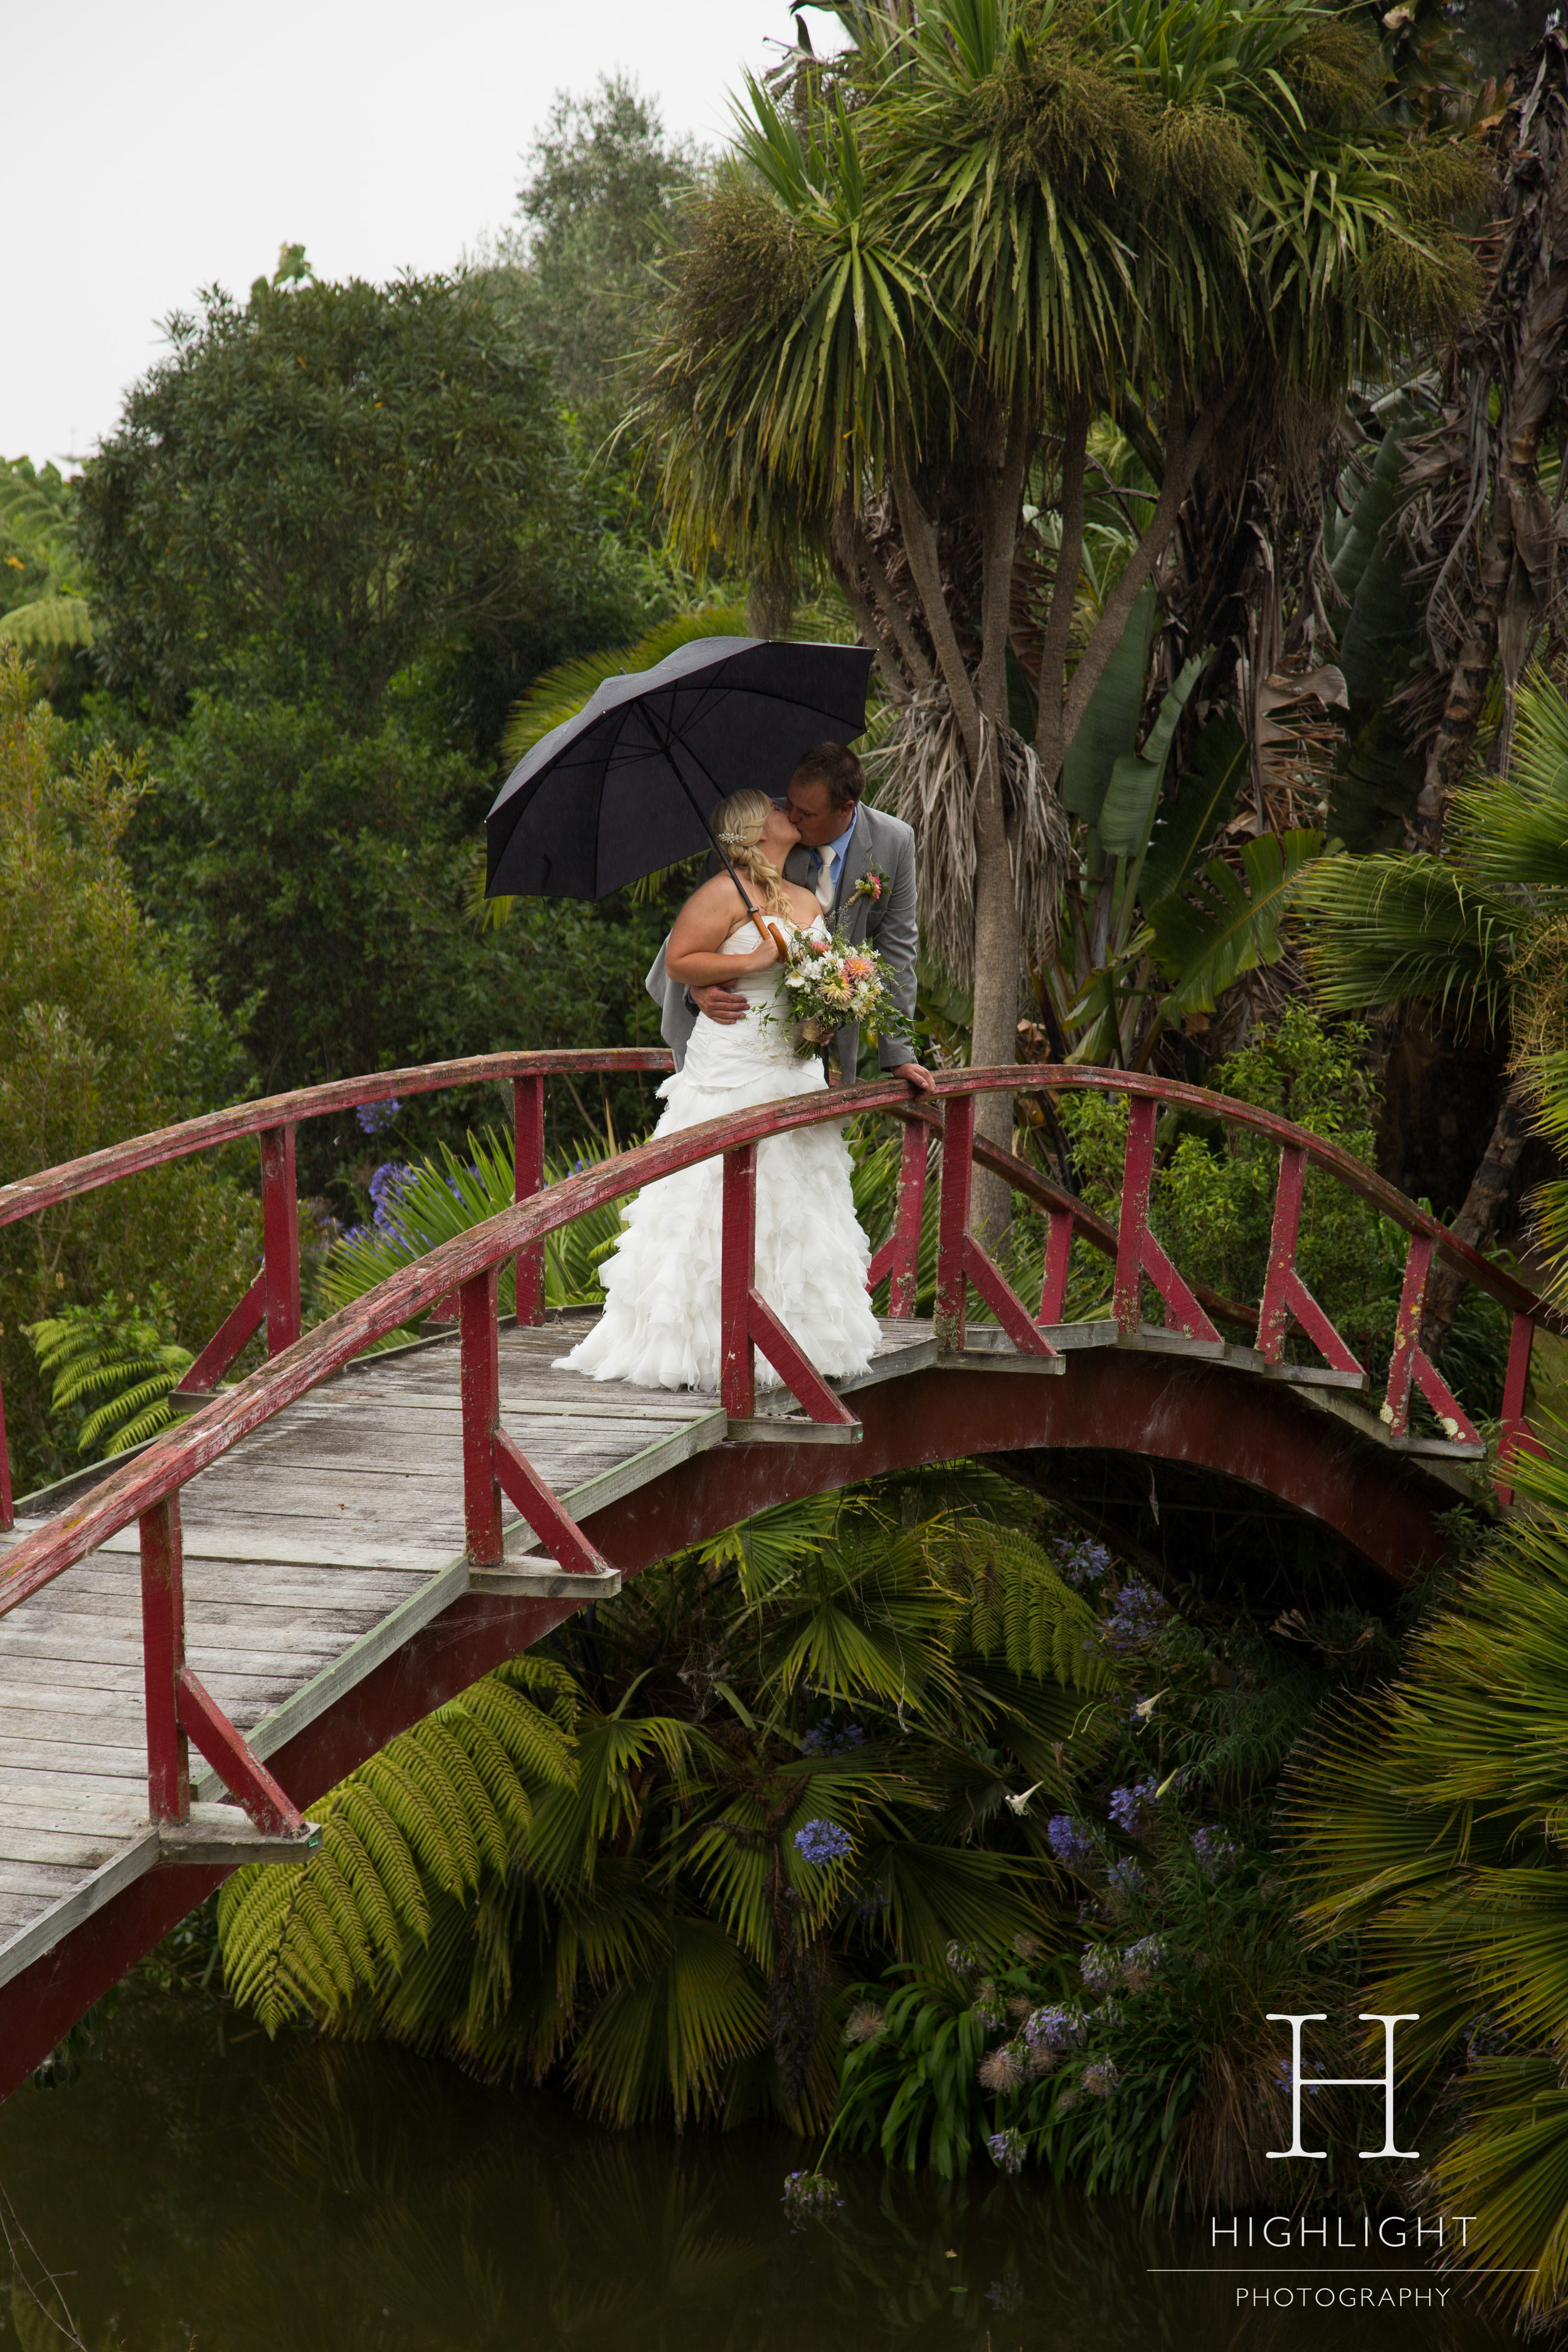 highlight_photography_wedding_new_zealand_kiss.jpg